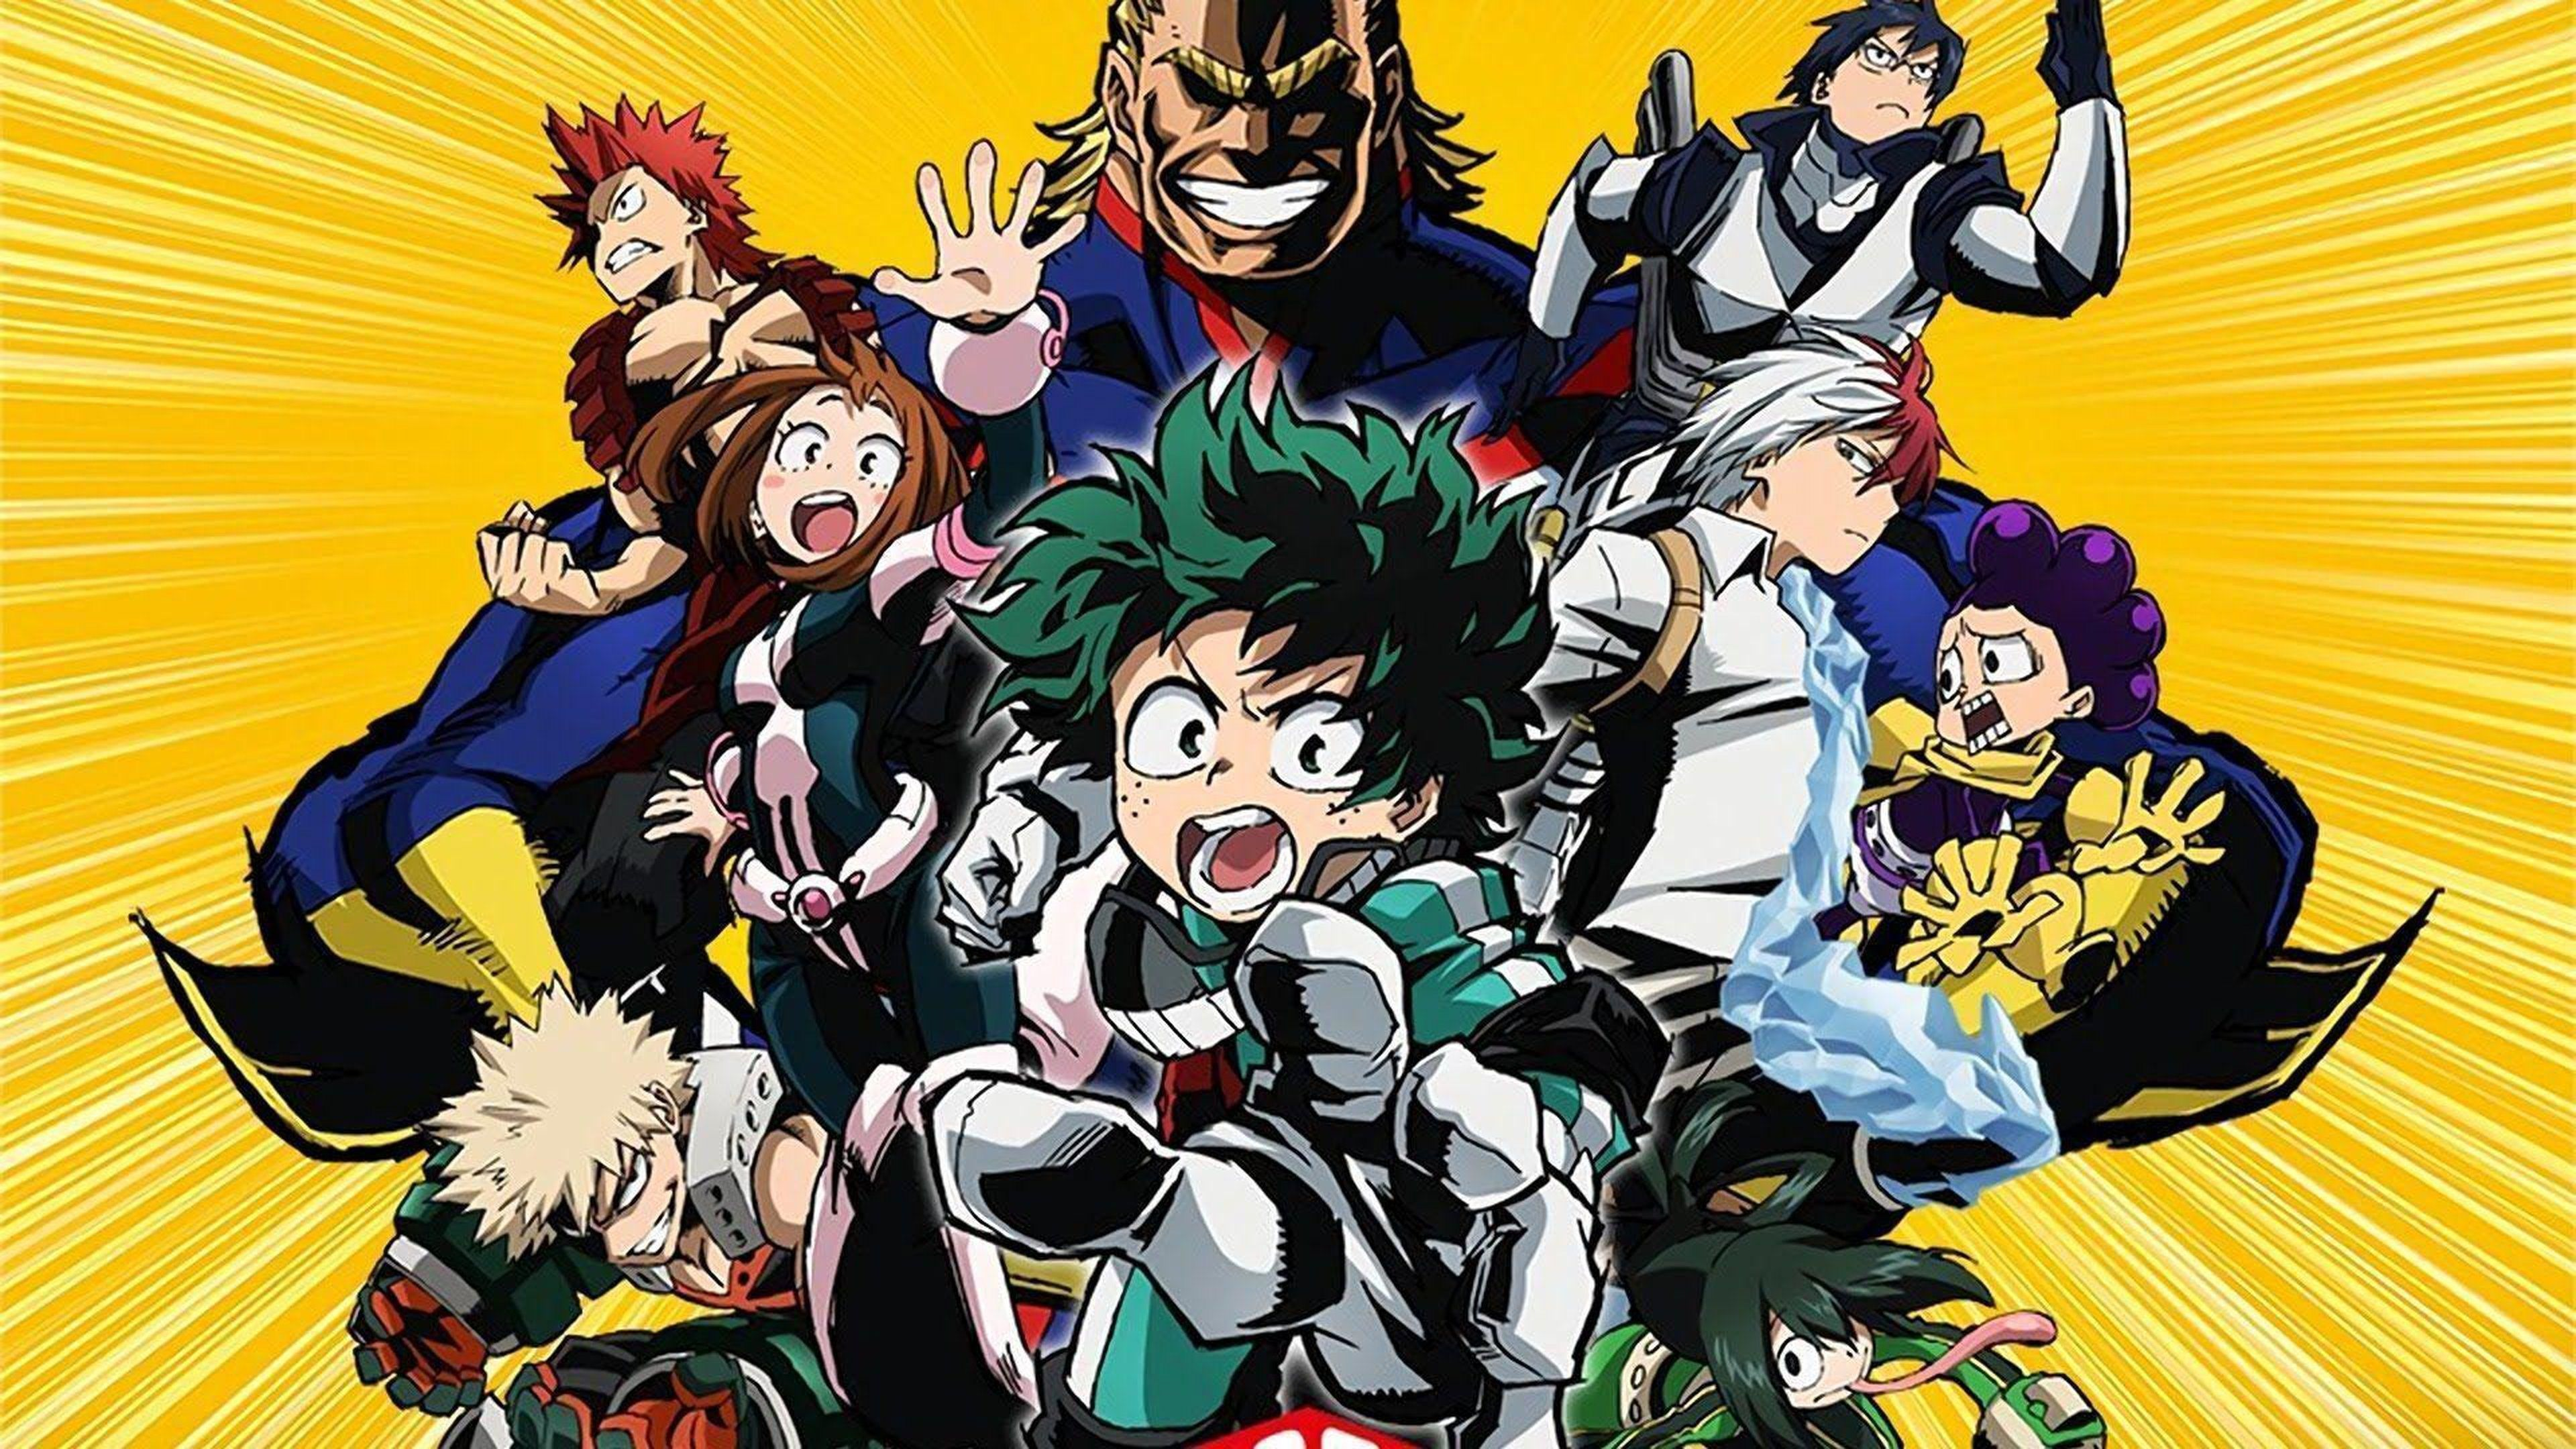 Iphone Wallpapers Hd Free Download 66 Best Free My Hero Academia 4k Wallpapers Wallpaperaccess